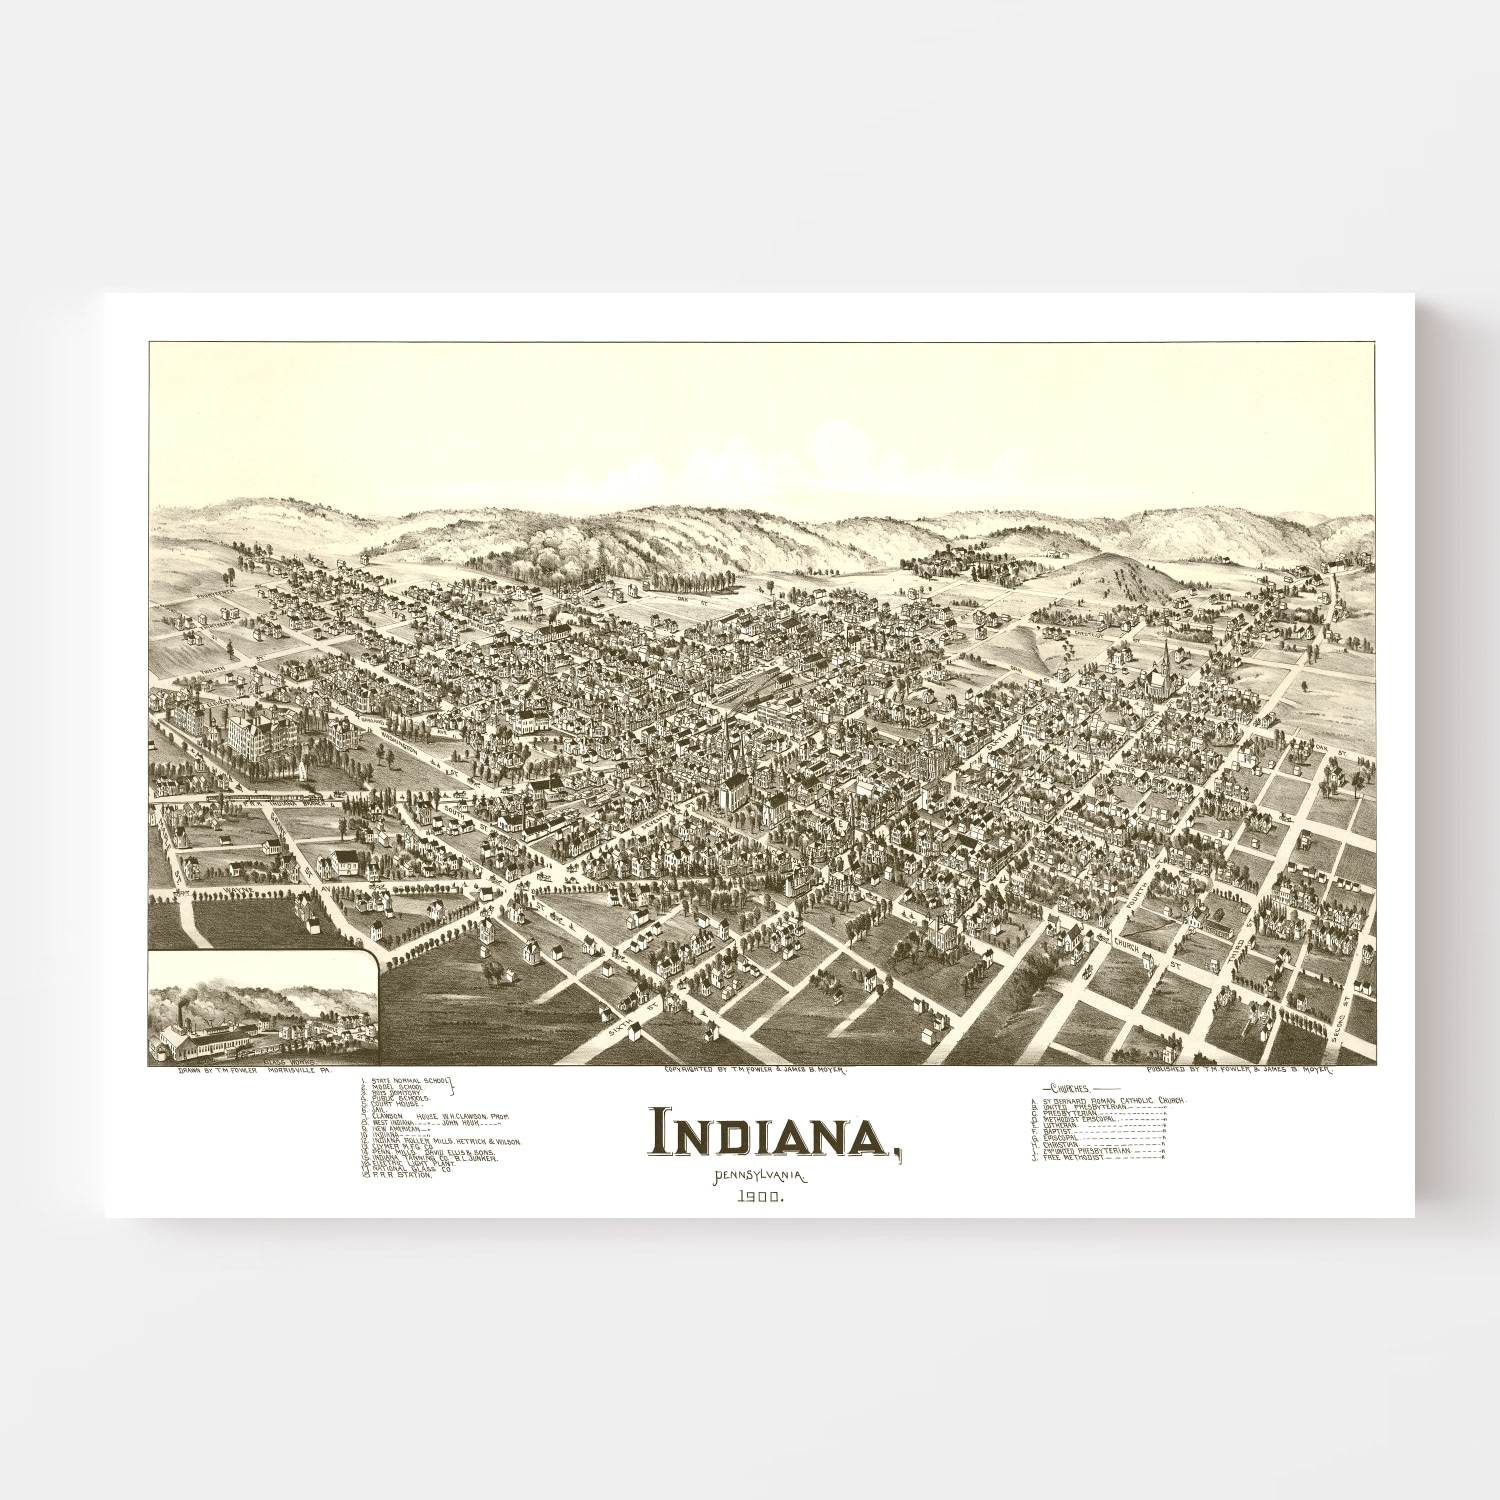 Vintage Map of Indiana, Pennsylvania 1900